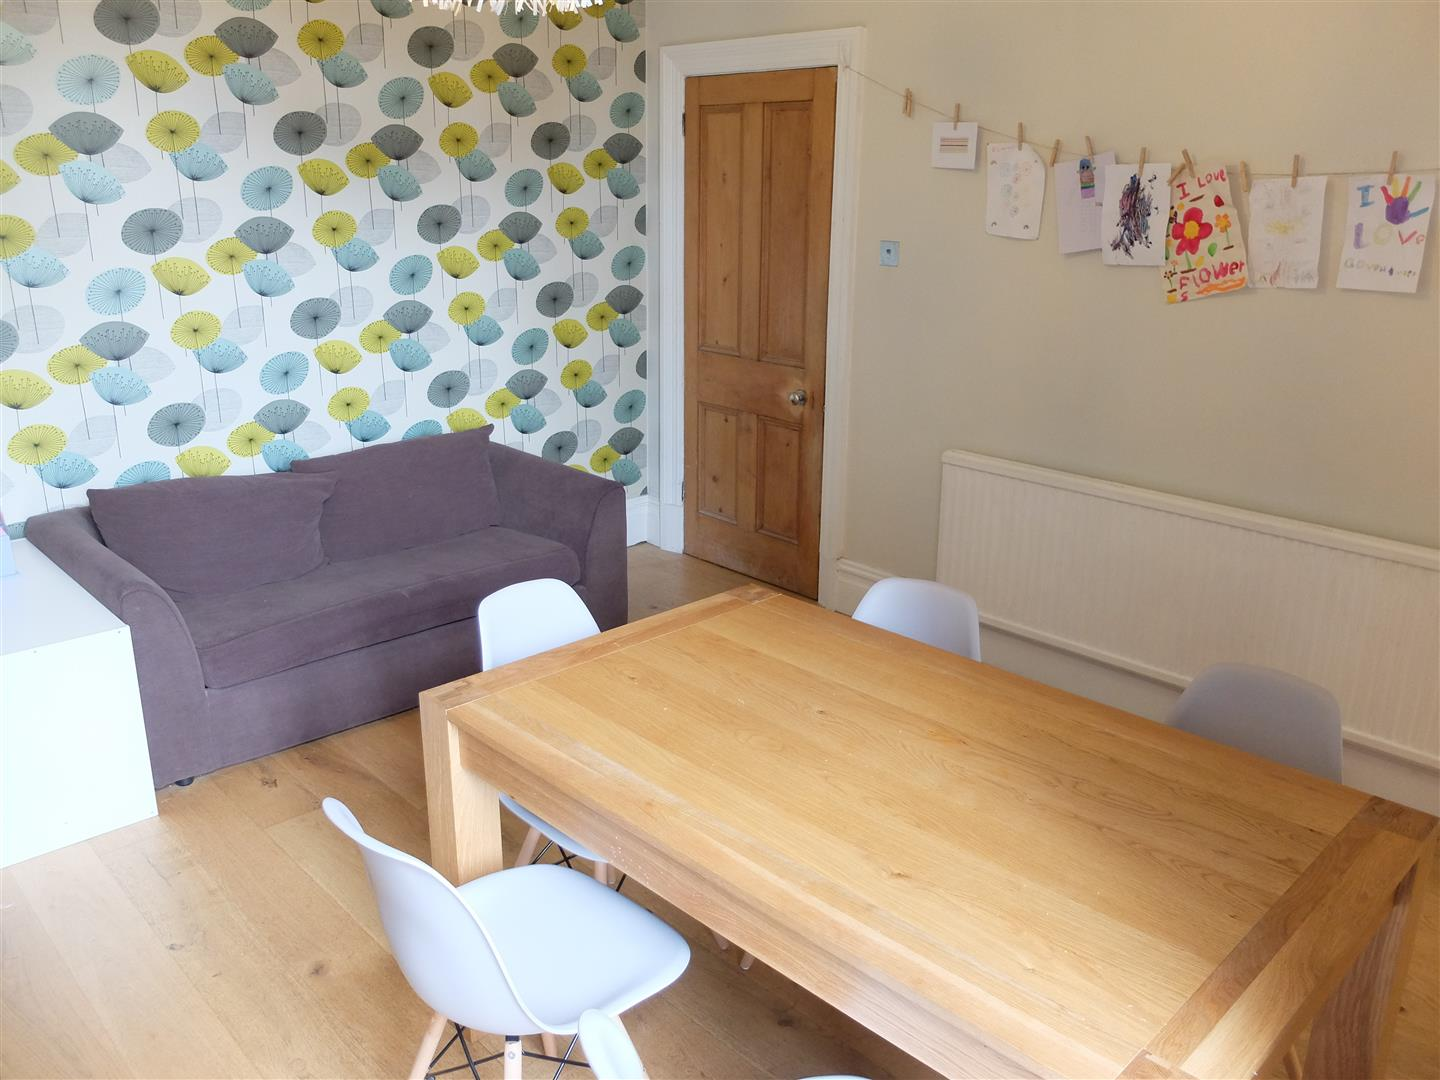 4 Bedrooms House - End Terrace For Sale 166 Nelson Street Carlisle 215,000